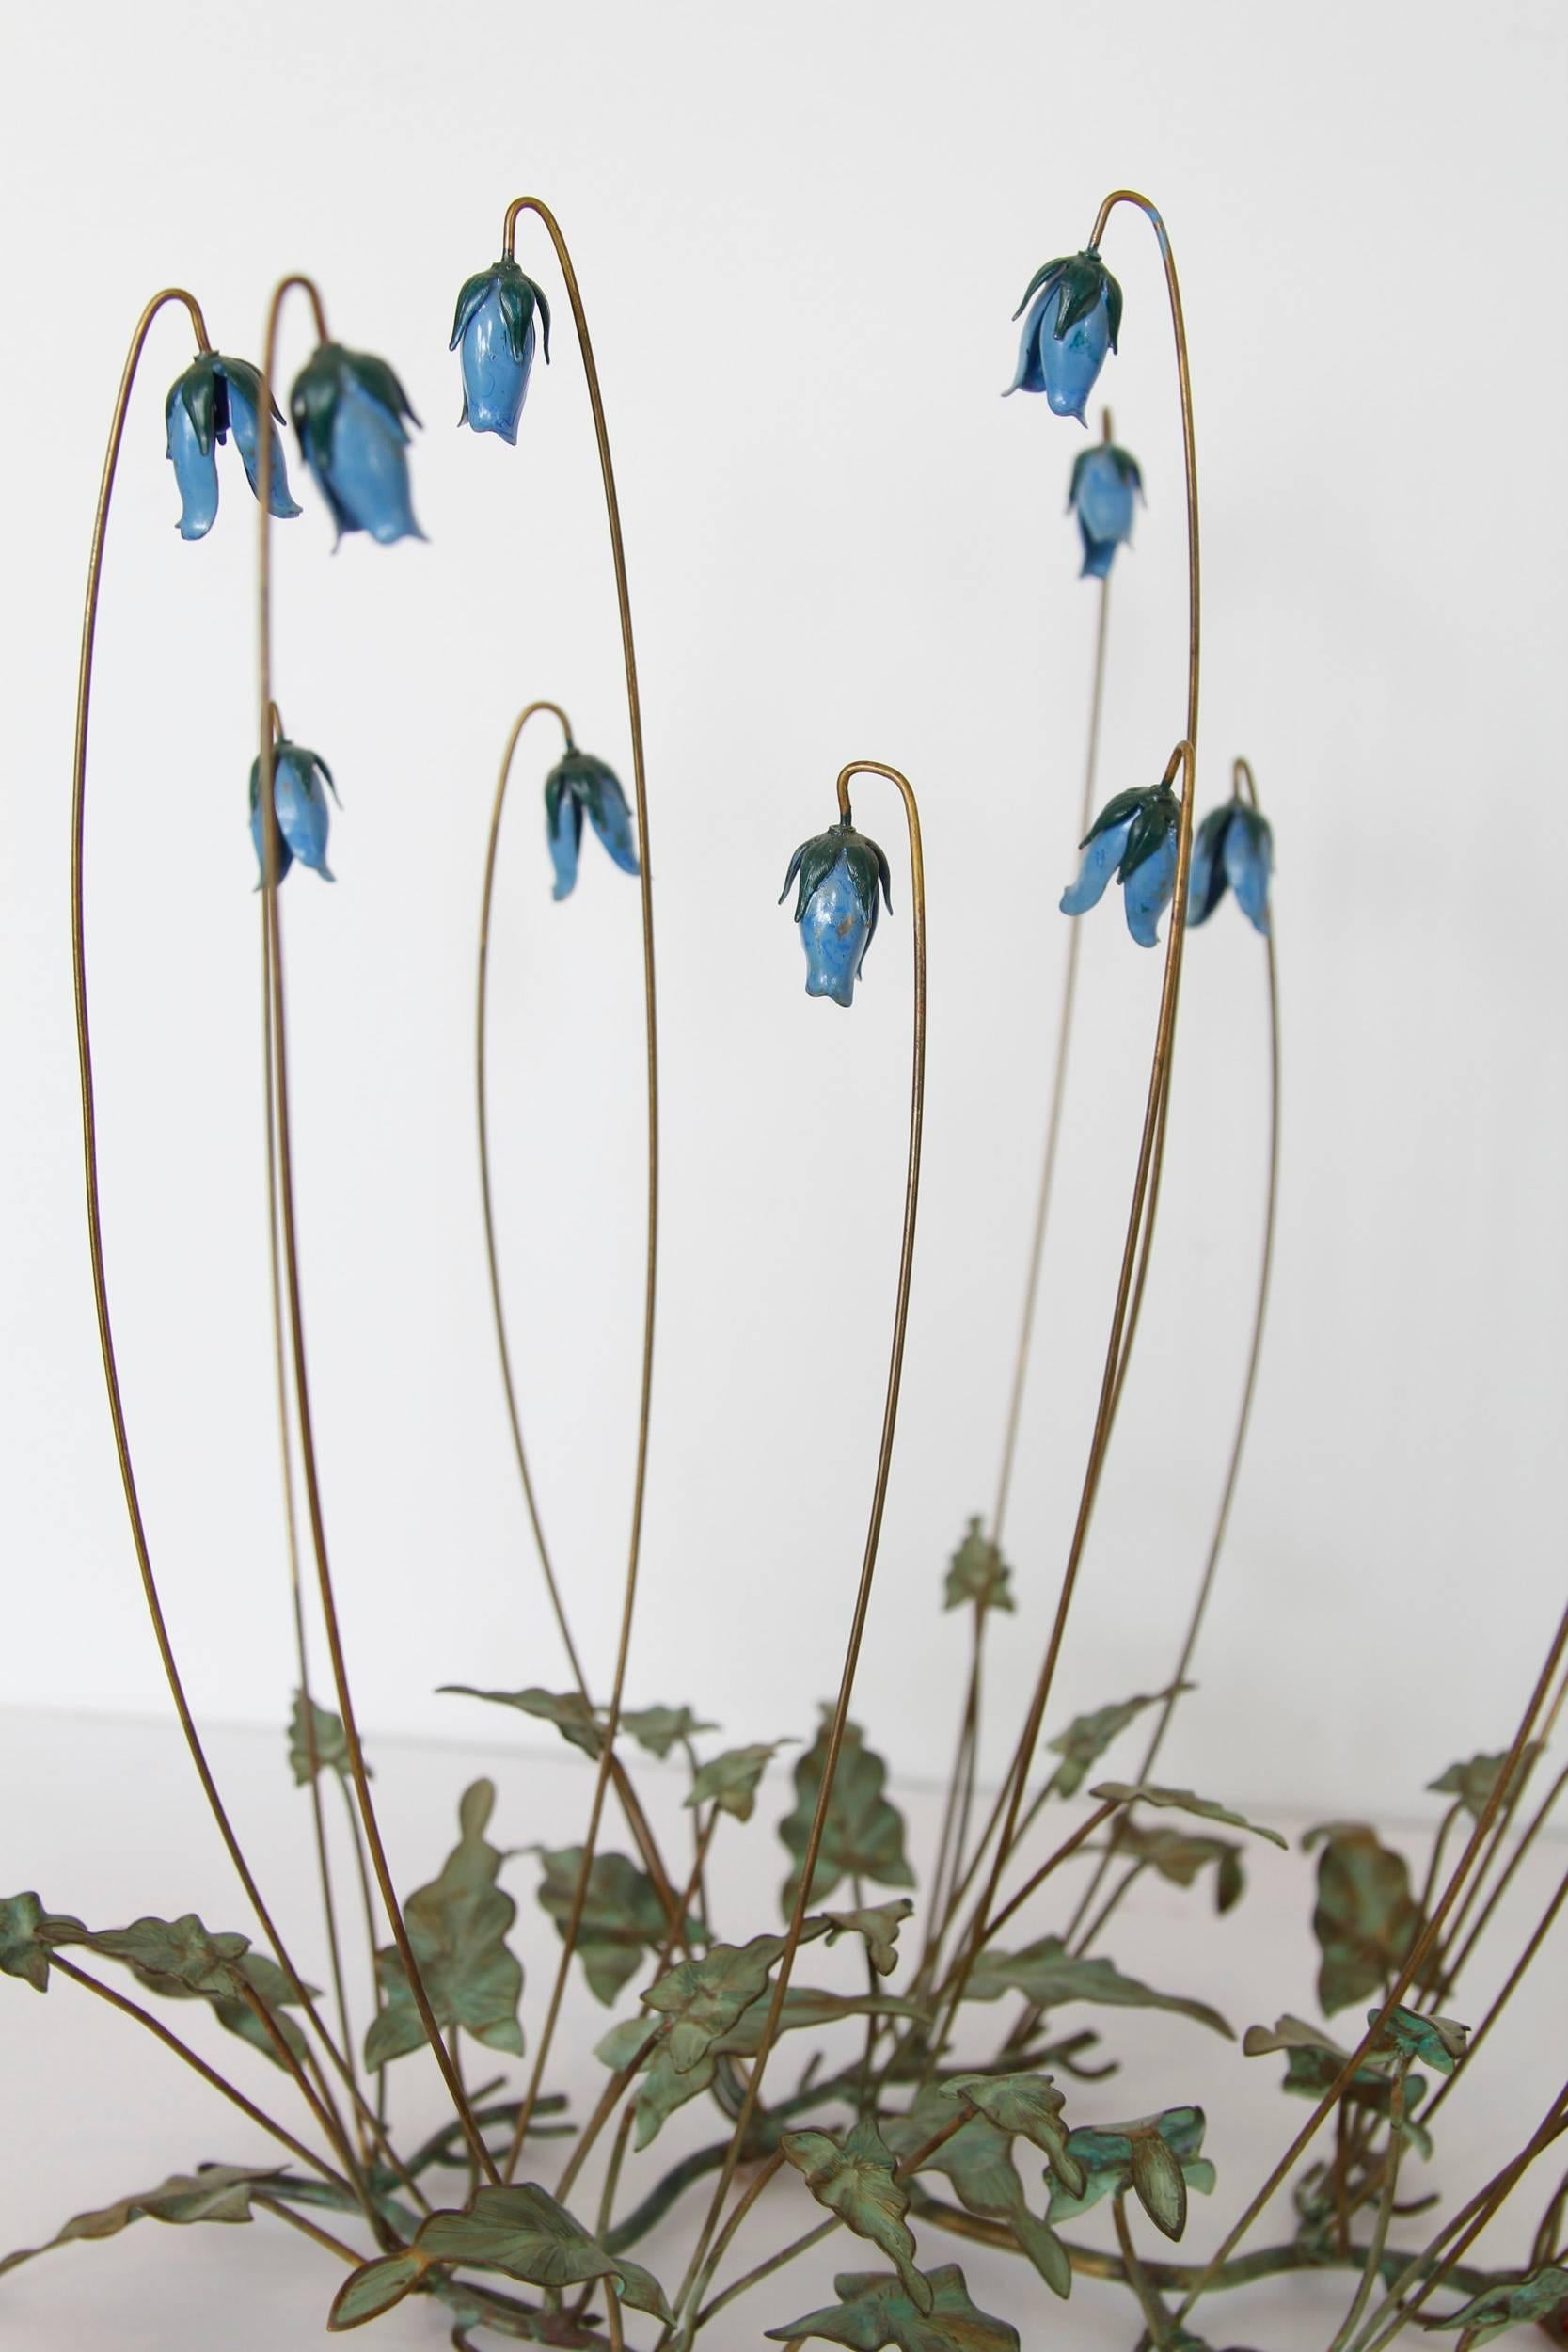 Vintage Enamel And Tole Bluebell Table Sculpture At 1stdibs